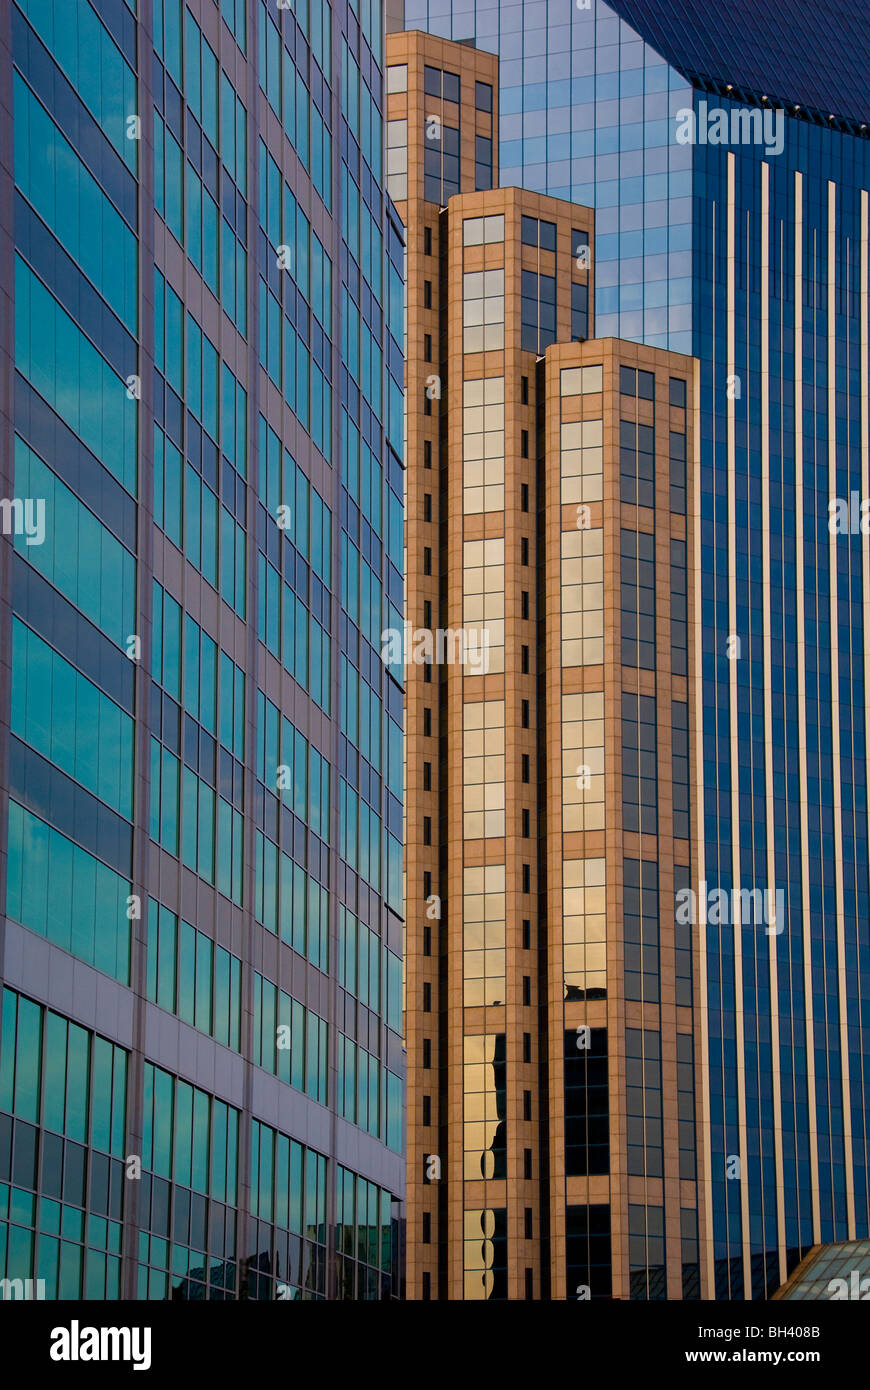 Architecture details of city center buildings in Nashville, Tennessee - Stock Image